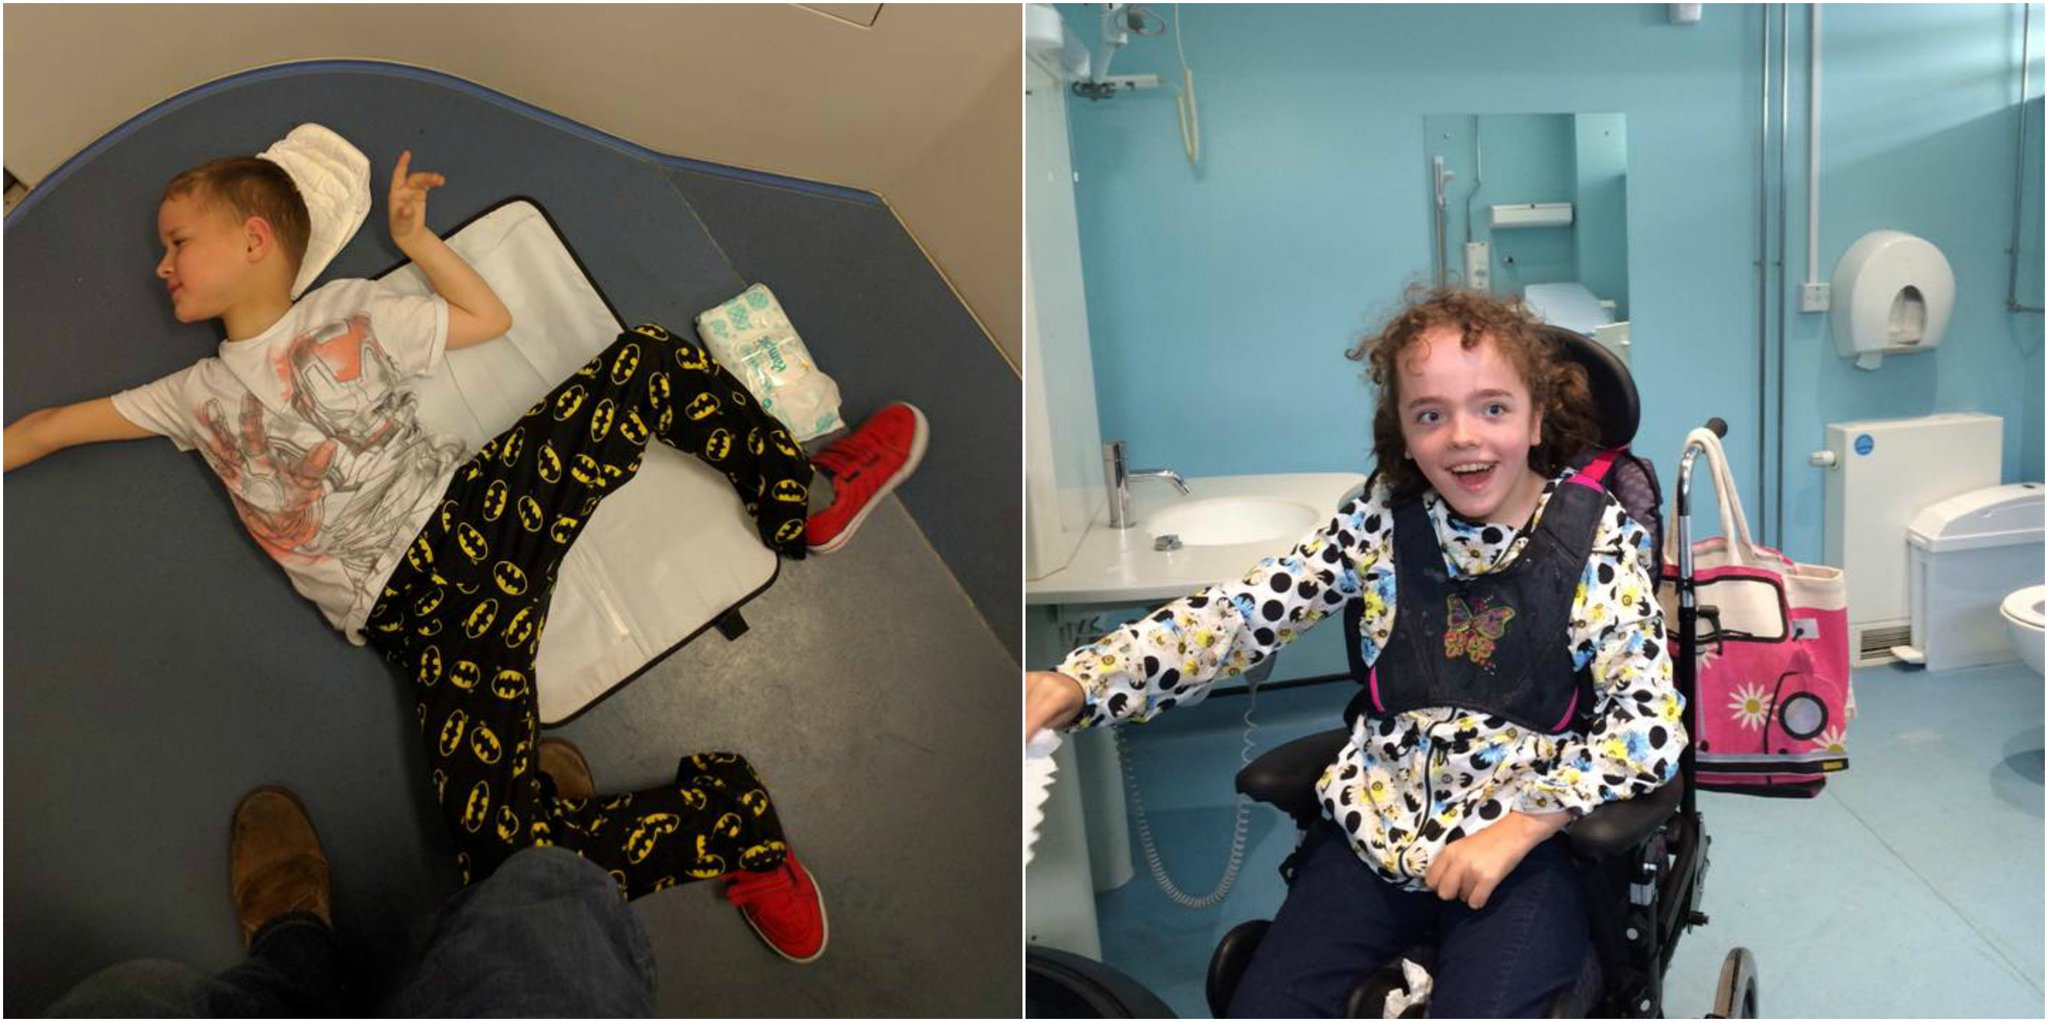 What a difference a #ChangingPlaces toilet makes! #access #incLOOsion #CPAD https://t.co/gAof2WYK6b